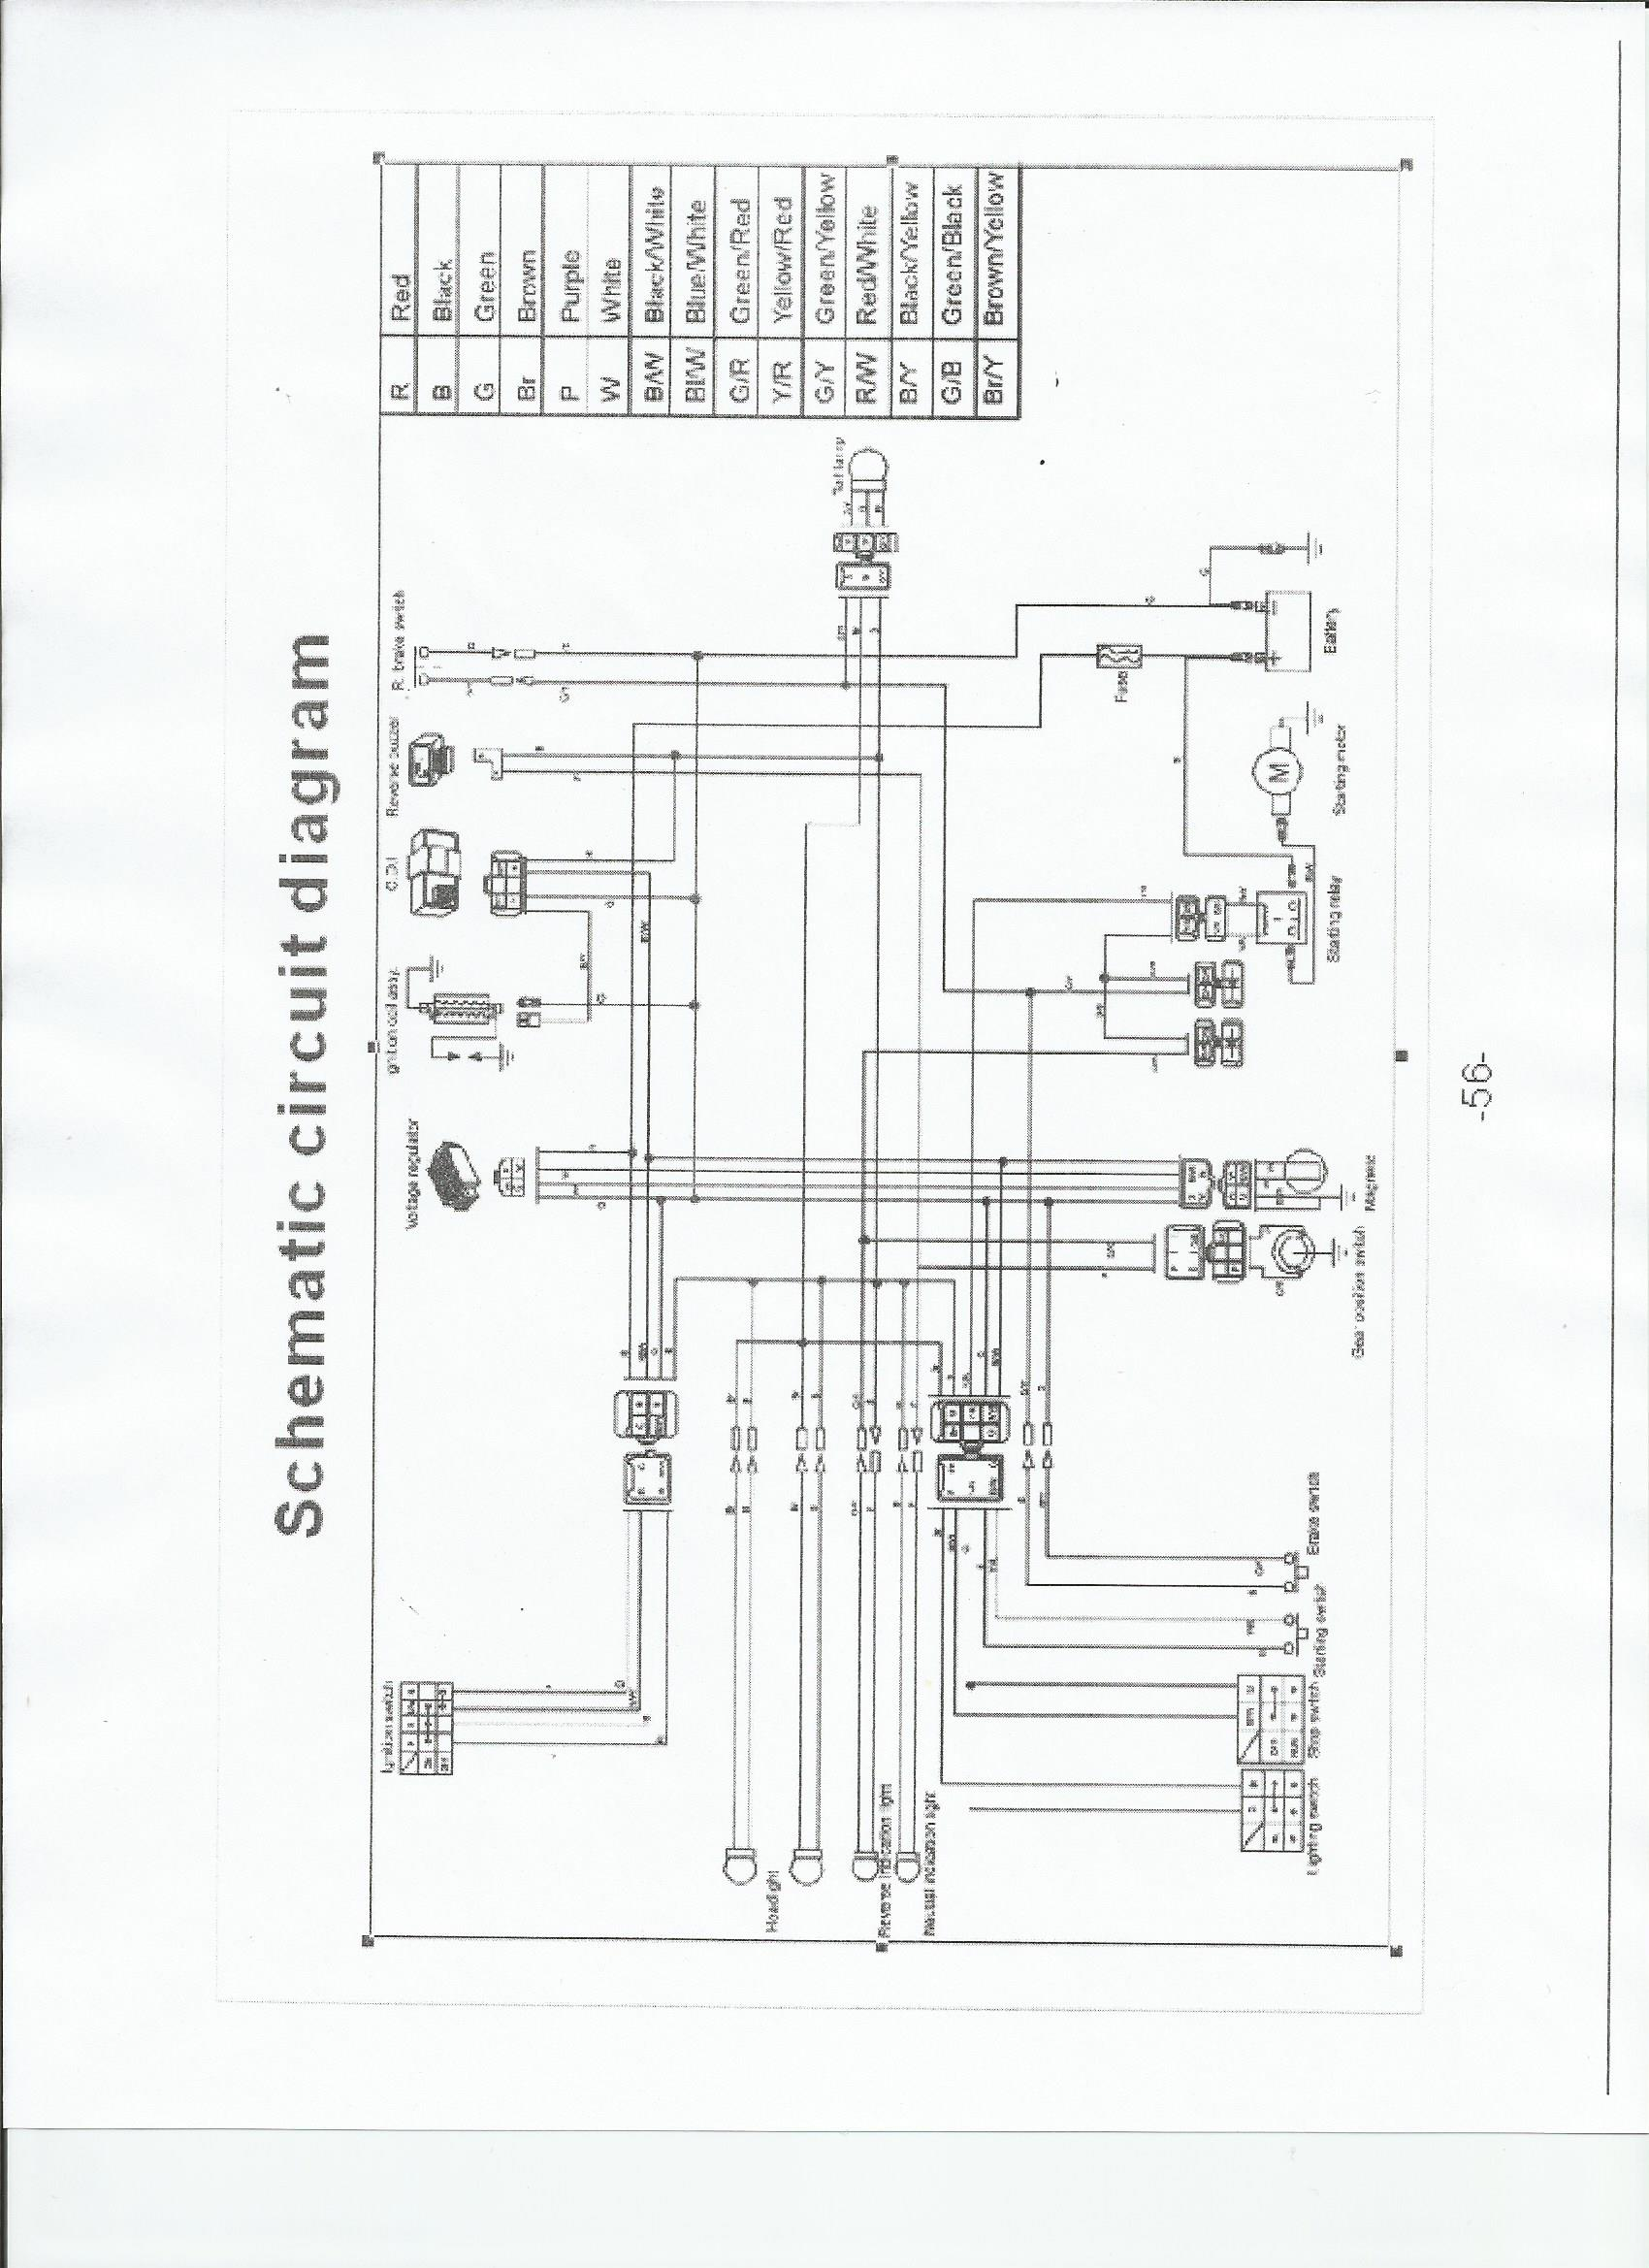 taotao mini and youth atv wiring schematic familygokarts support rh support familygokarts com taotao 125 wiring diagram taotao 110 wiring diagram